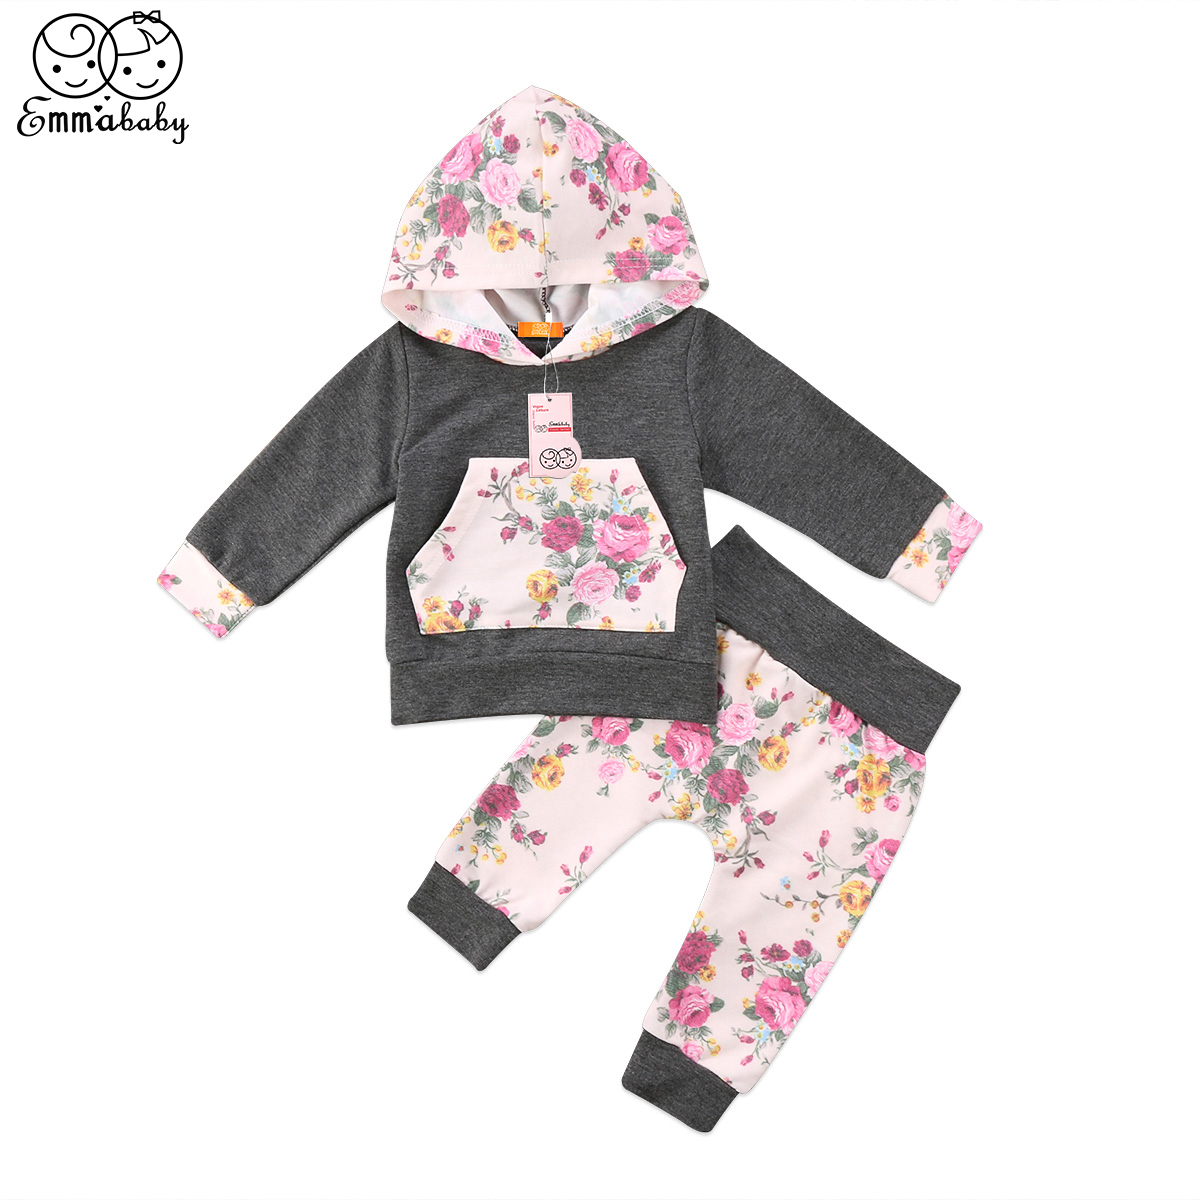 New arrival autumn winter casual kid clothes set Newborn Baby Girls Hooded Tops Floral print Pants Leggings 2pcs Outfit Set